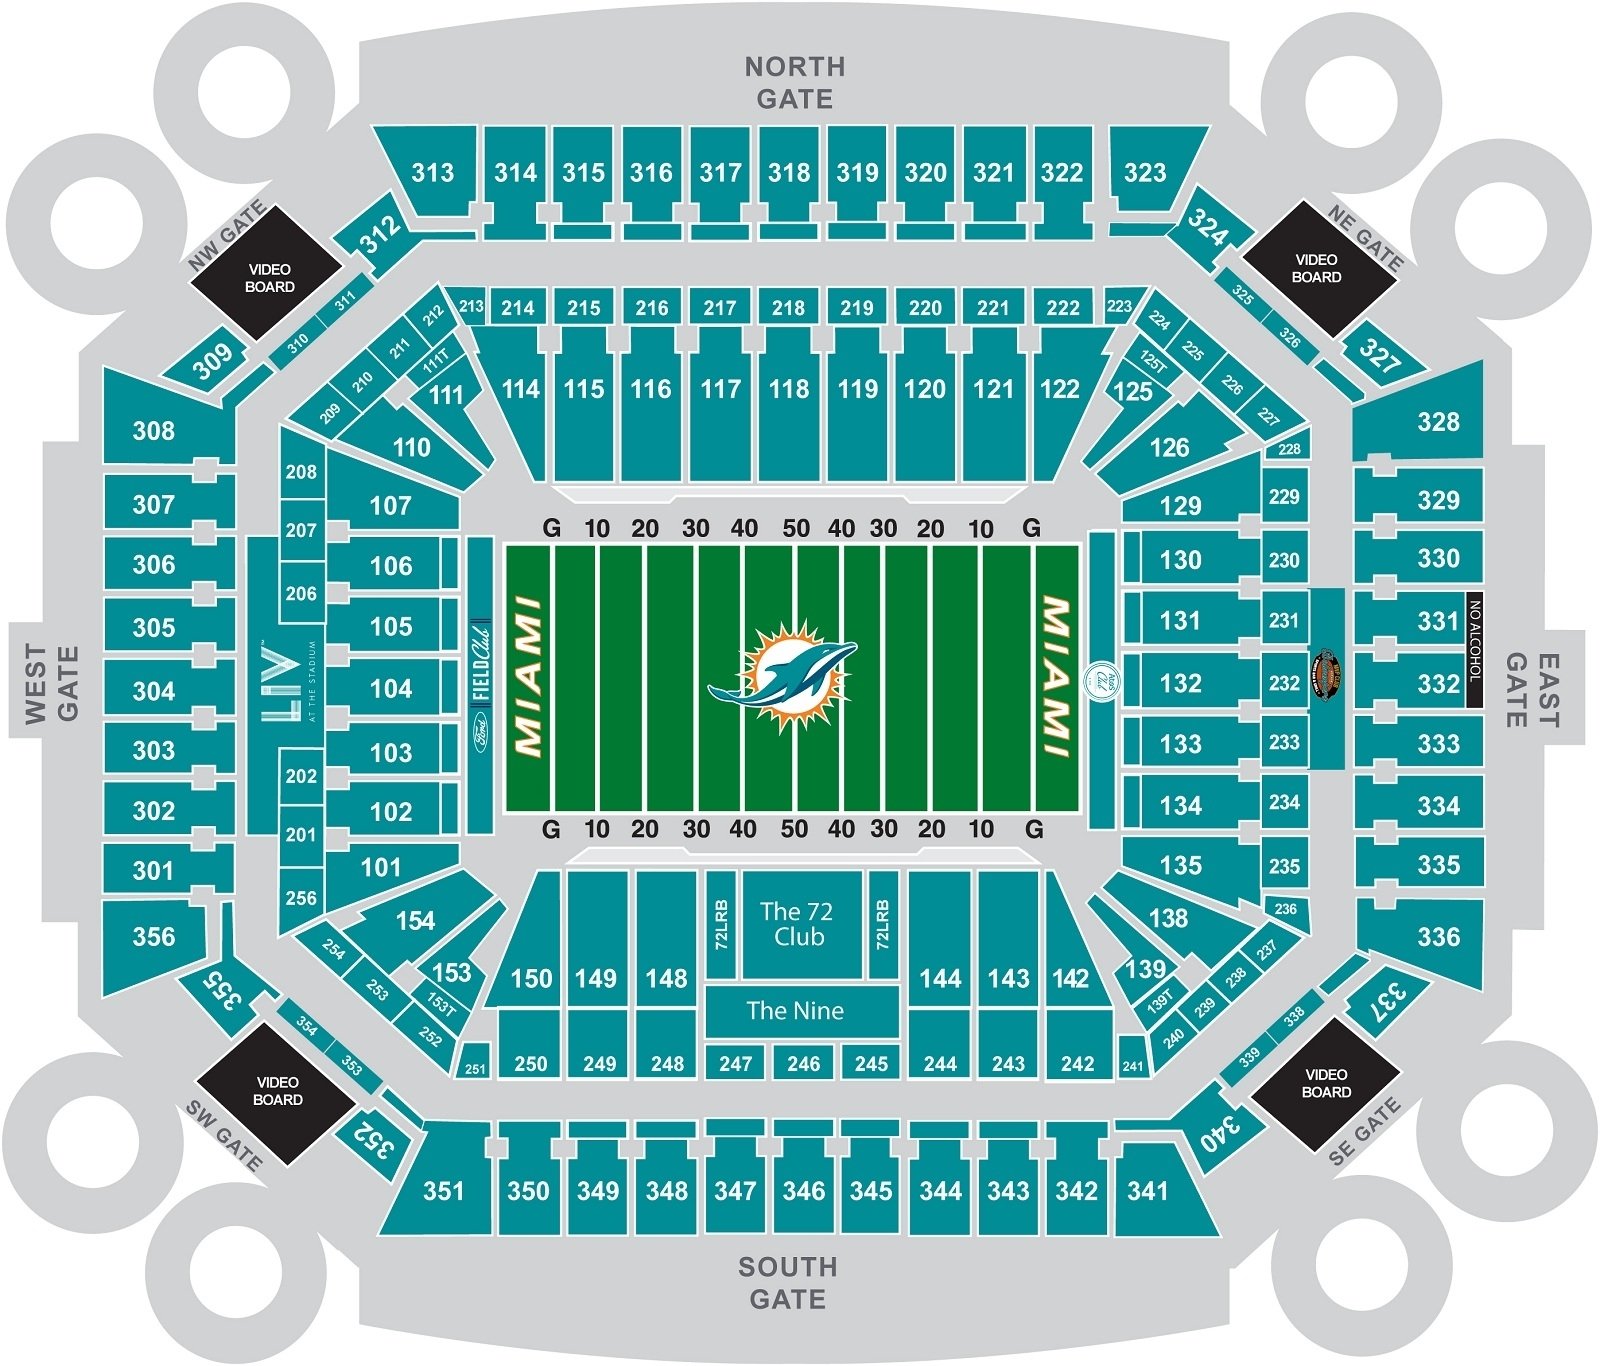 2020 Super Bowl Seating Chart | February 2, 2020 | Fan intended for Seating Capacity At Super Bowl 2019